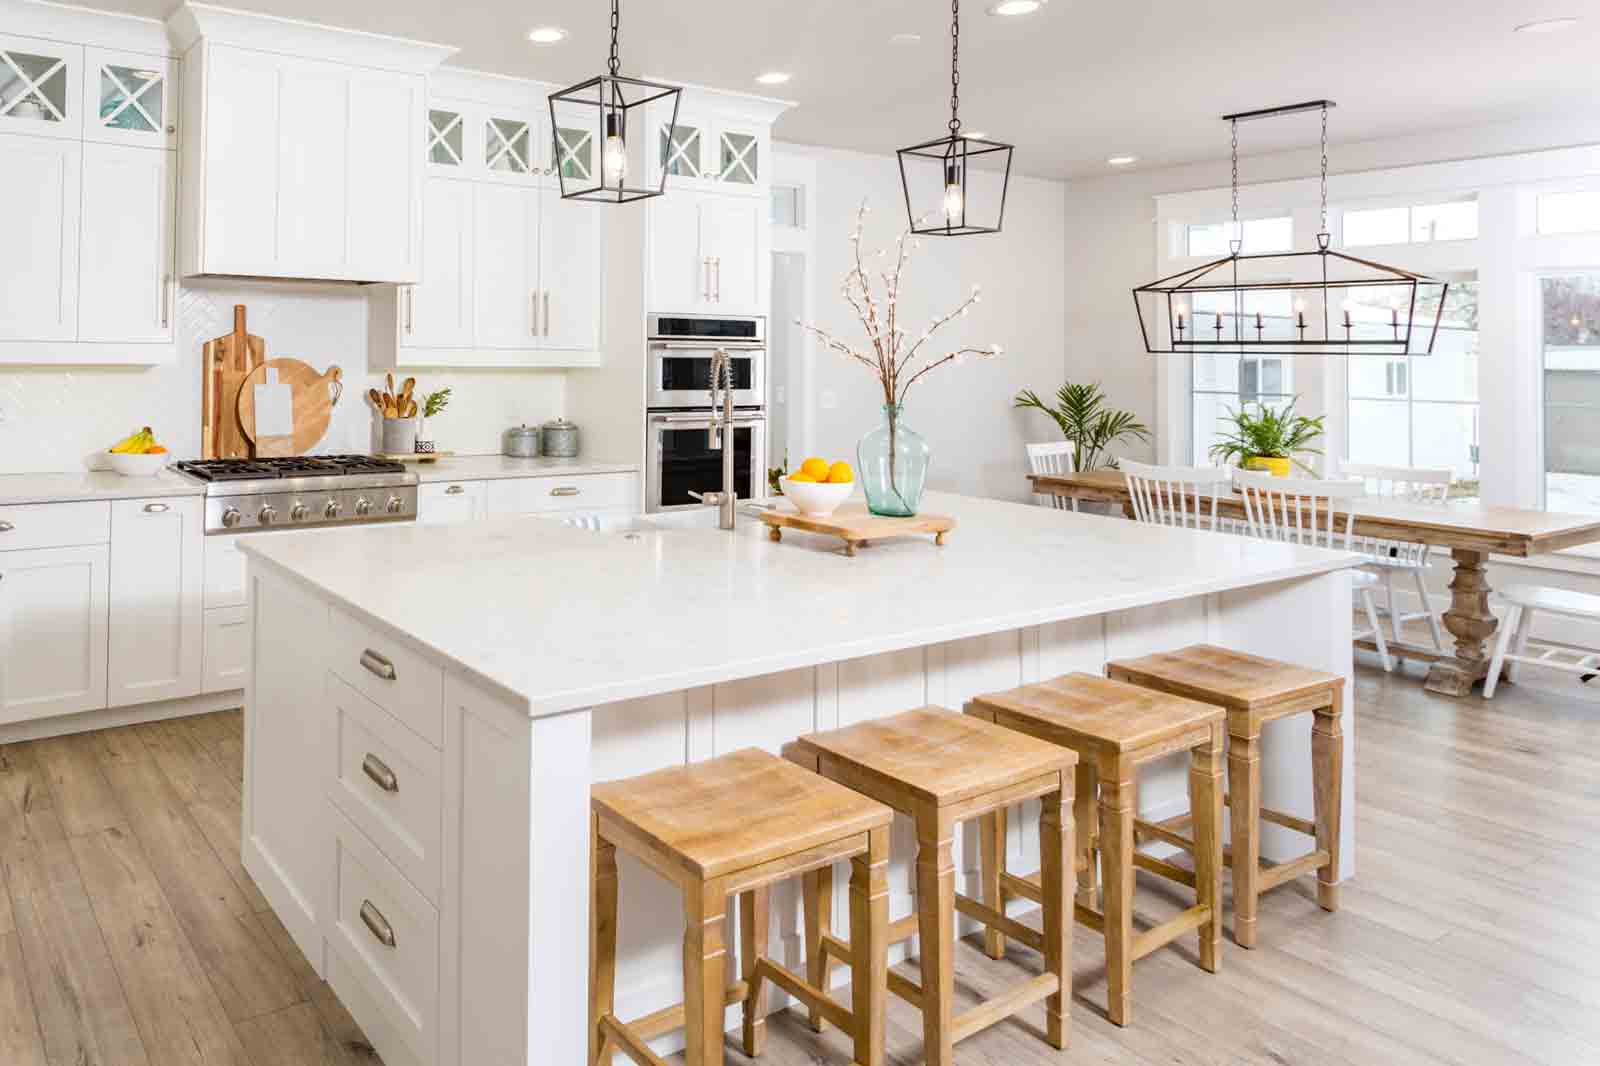 San Diego Remodel Resources & Tips by Lars Remodeling & Design